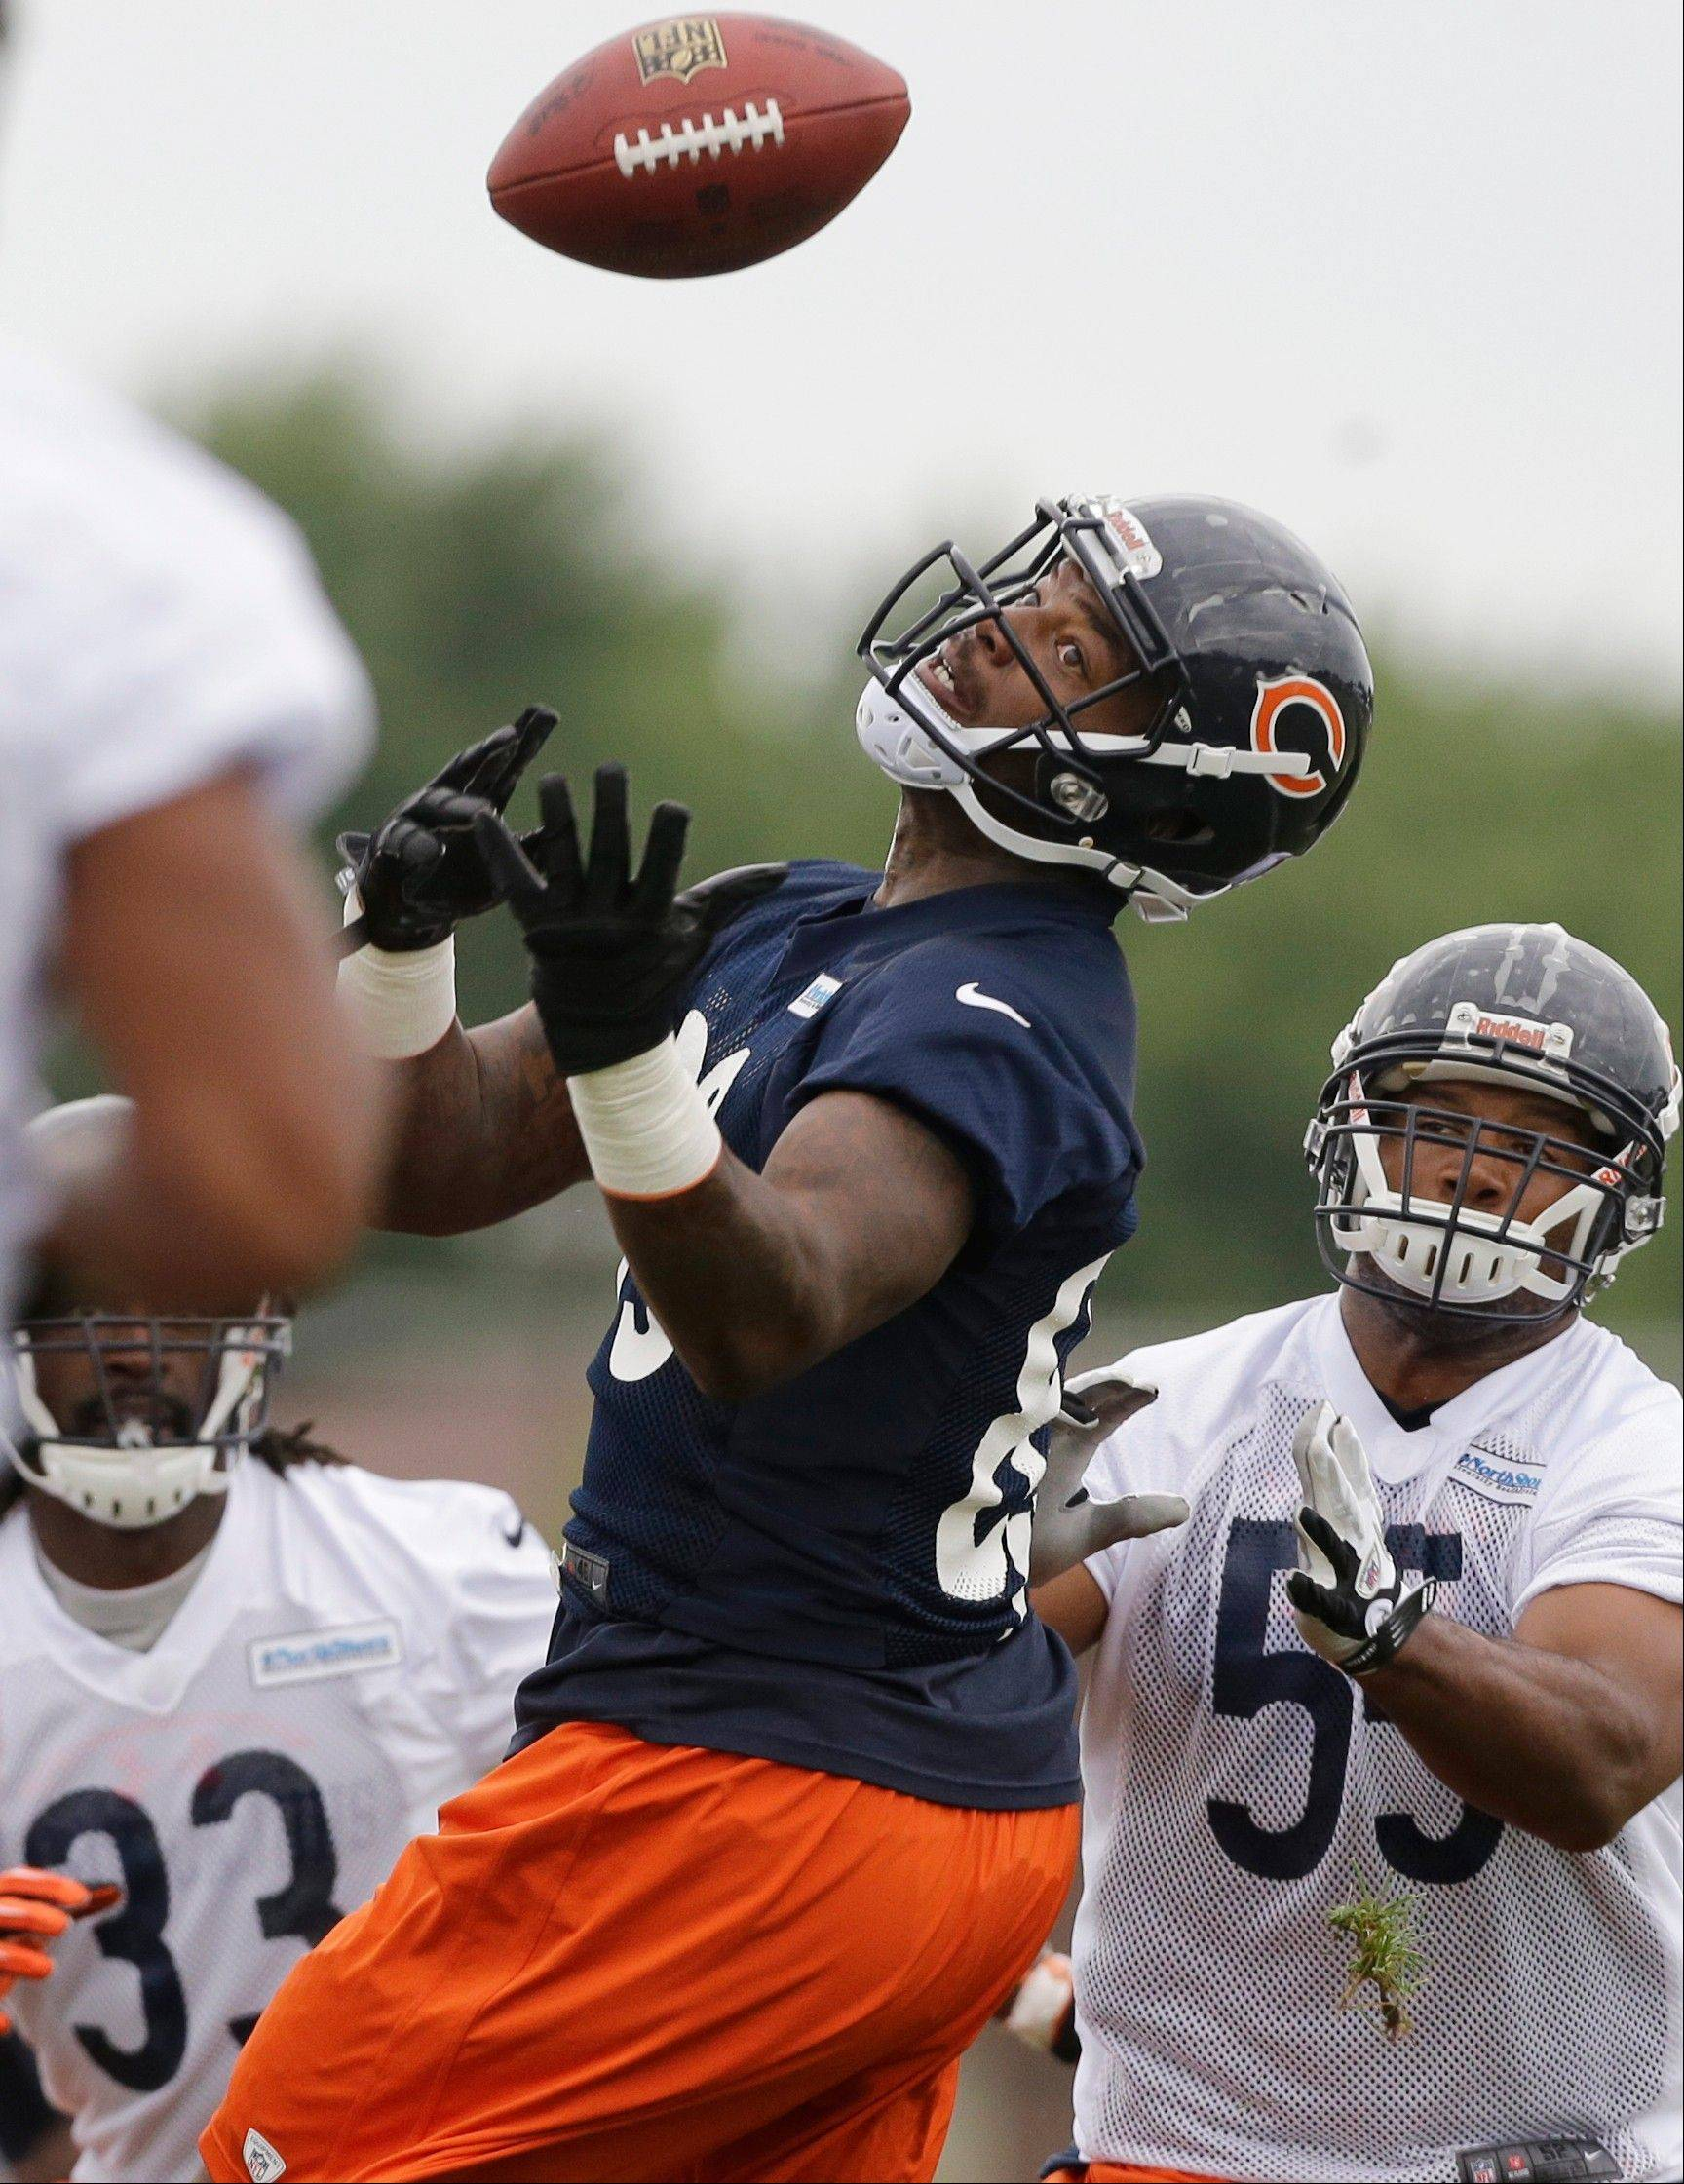 Bears tight end Martellus Bennett describes how he lets quarterback Jay Cutler know that Bennett is open. �He sees me. I wear white gloves, so he can see the white gloves when I wave them like Mickey Mouse. I�m clapping every time I�m open. I do enough of that to let him know I�m open before I have to tell him.�